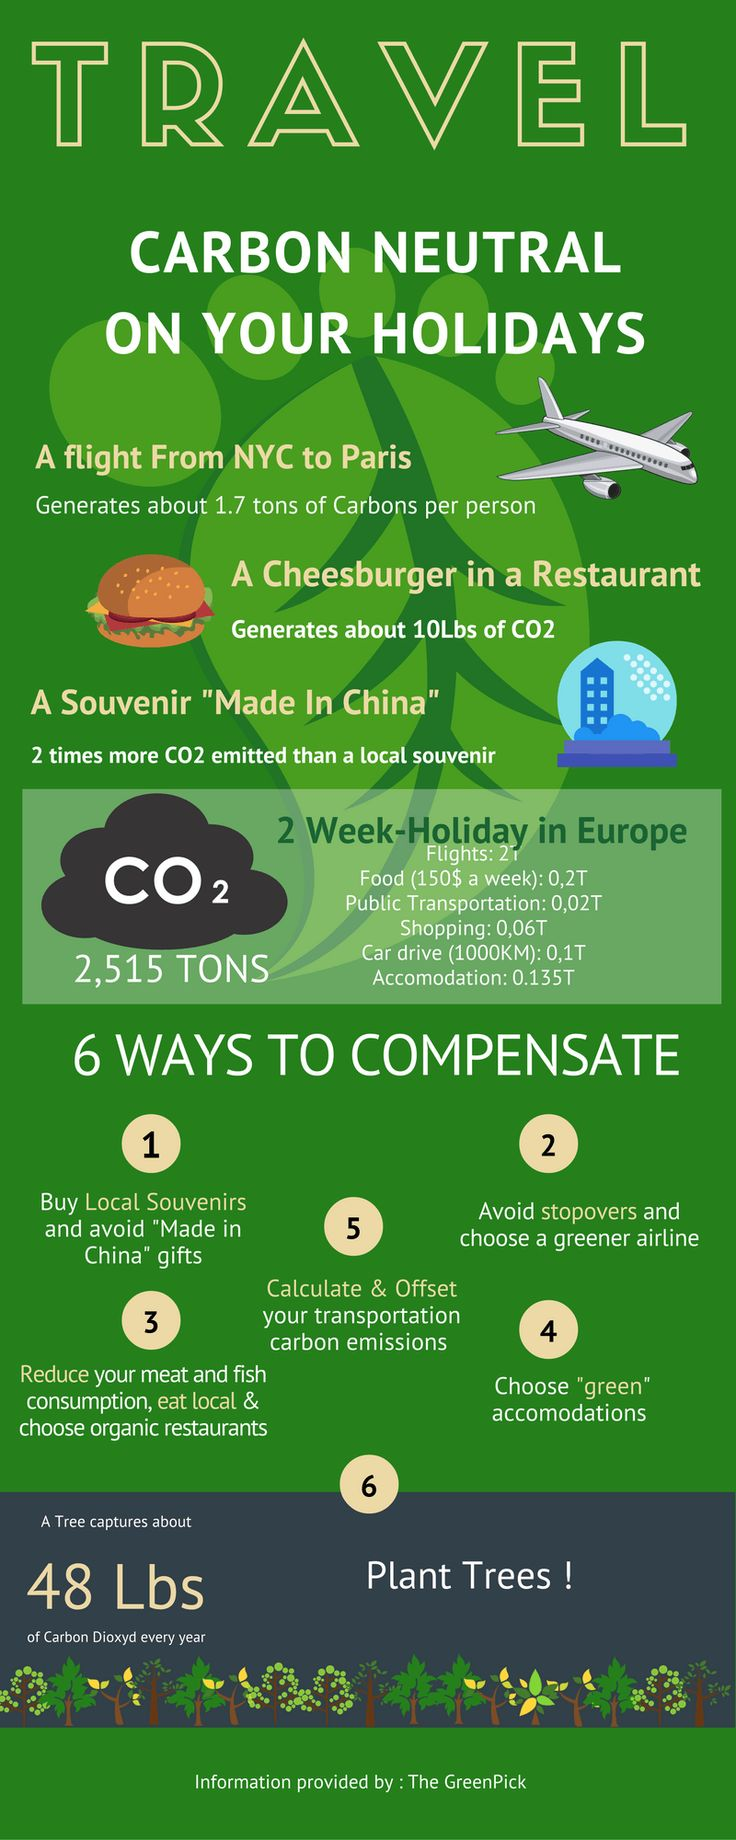 Sustainable tourism green travel responsible travel carbon footprint neutral. Guide to travel green and responsible #sustainable tourism